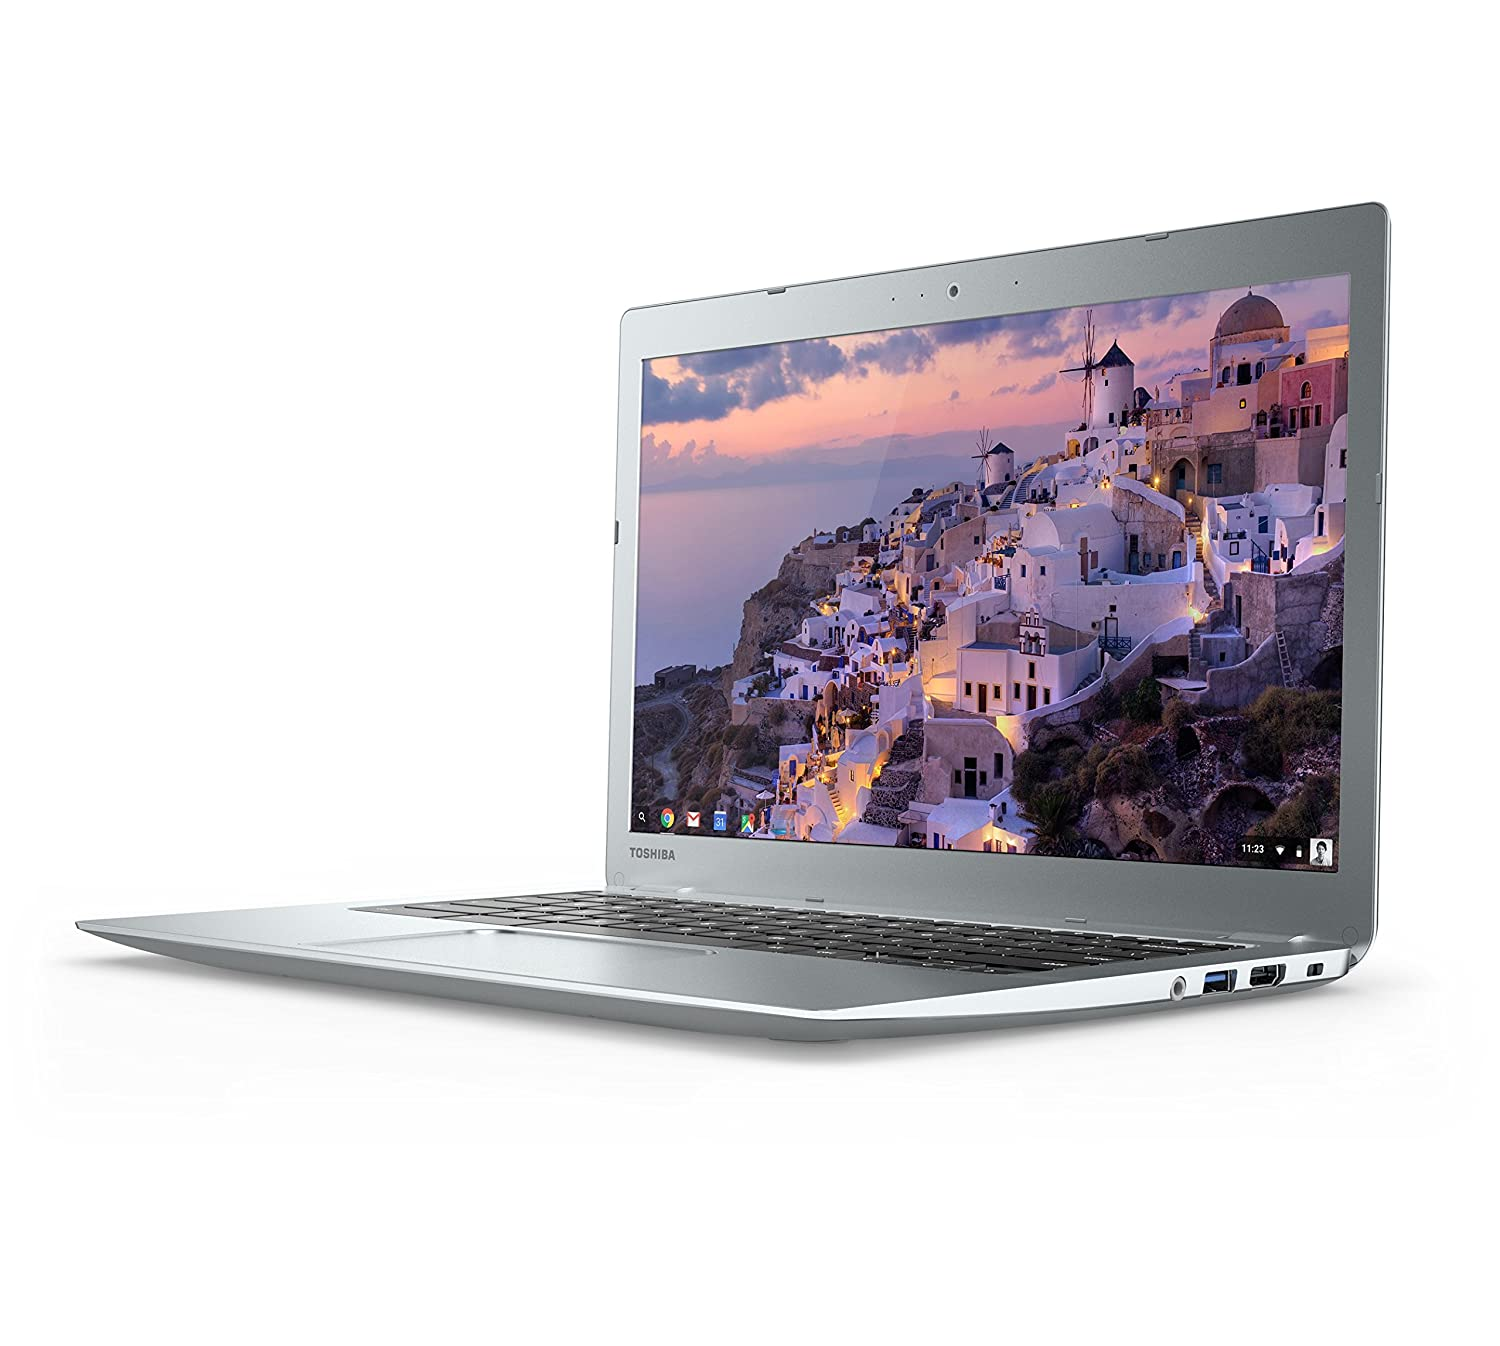 Amazon.com: Toshiba Chromebook 2 - 2015 Edition (CB35-C3300) Full HD, Backlit Keyboard: Computers & Accessories